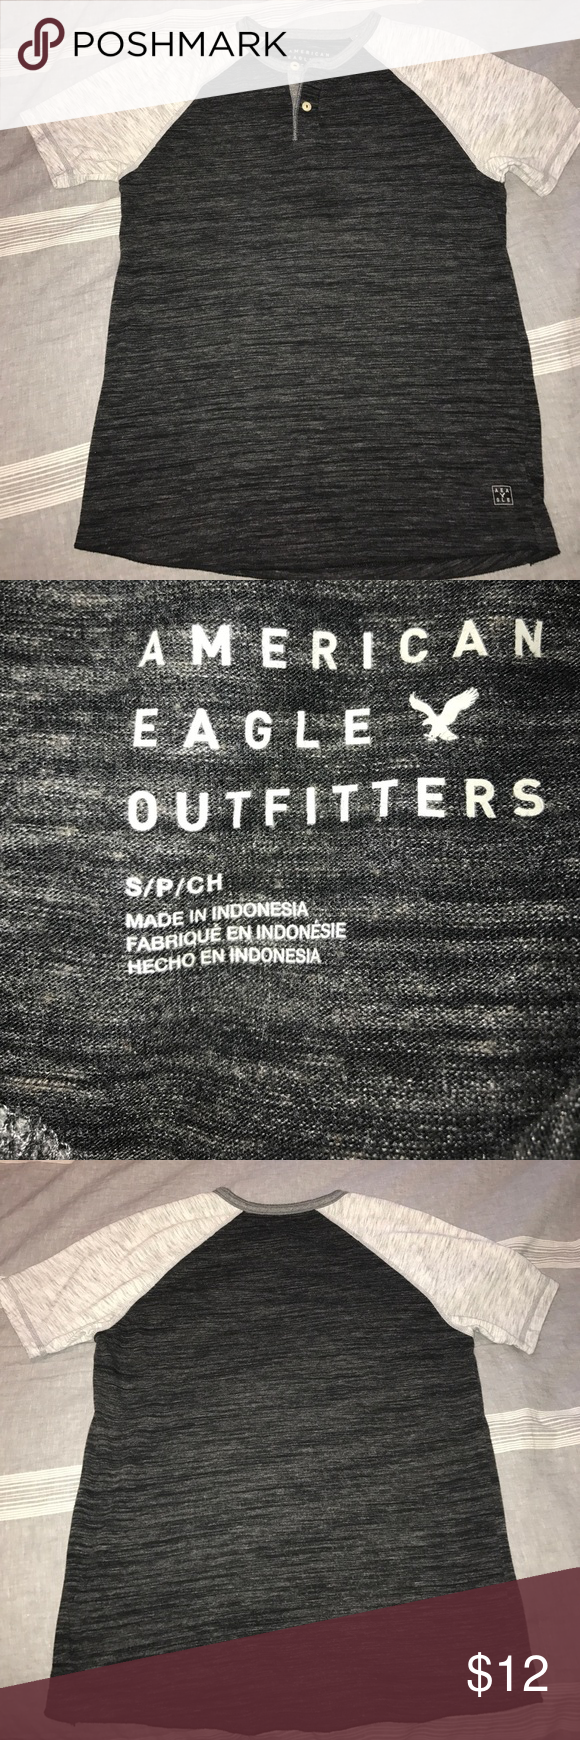 American eagle short sleeve size small Used, perfect condition American Eagle Outfitters Shirts Tees - Short Sleeve